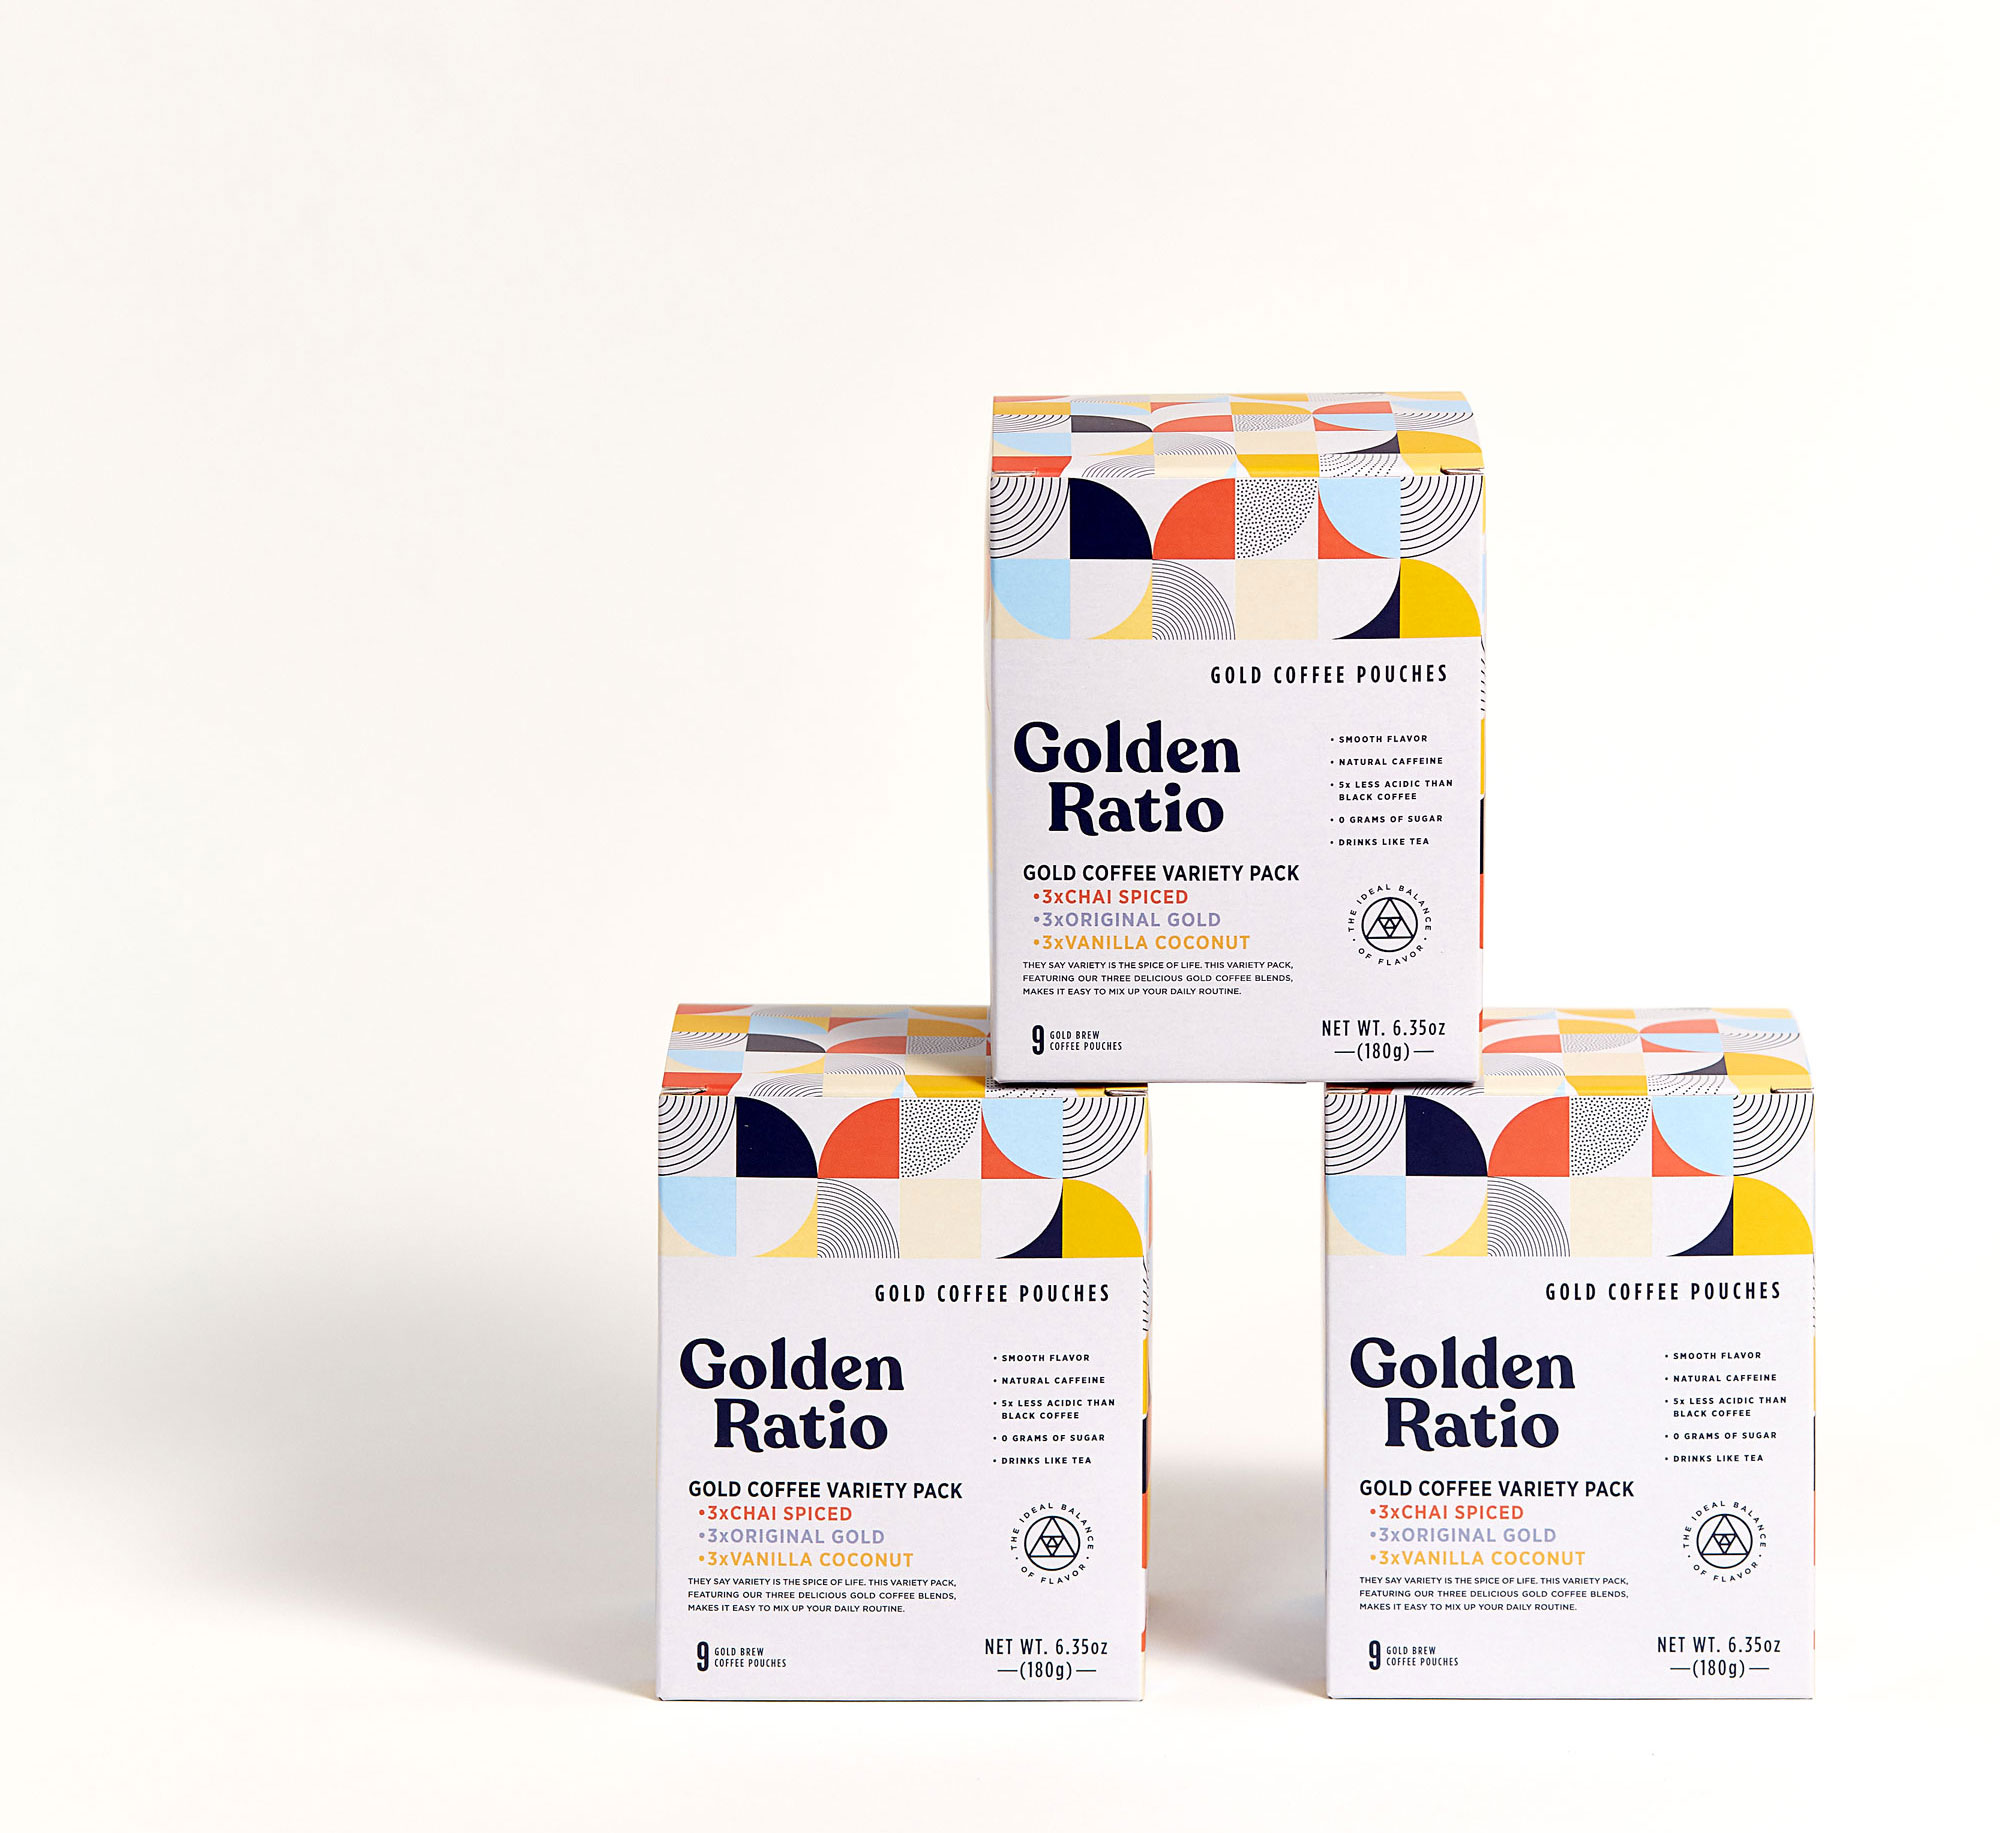 Golden Ratio packaging